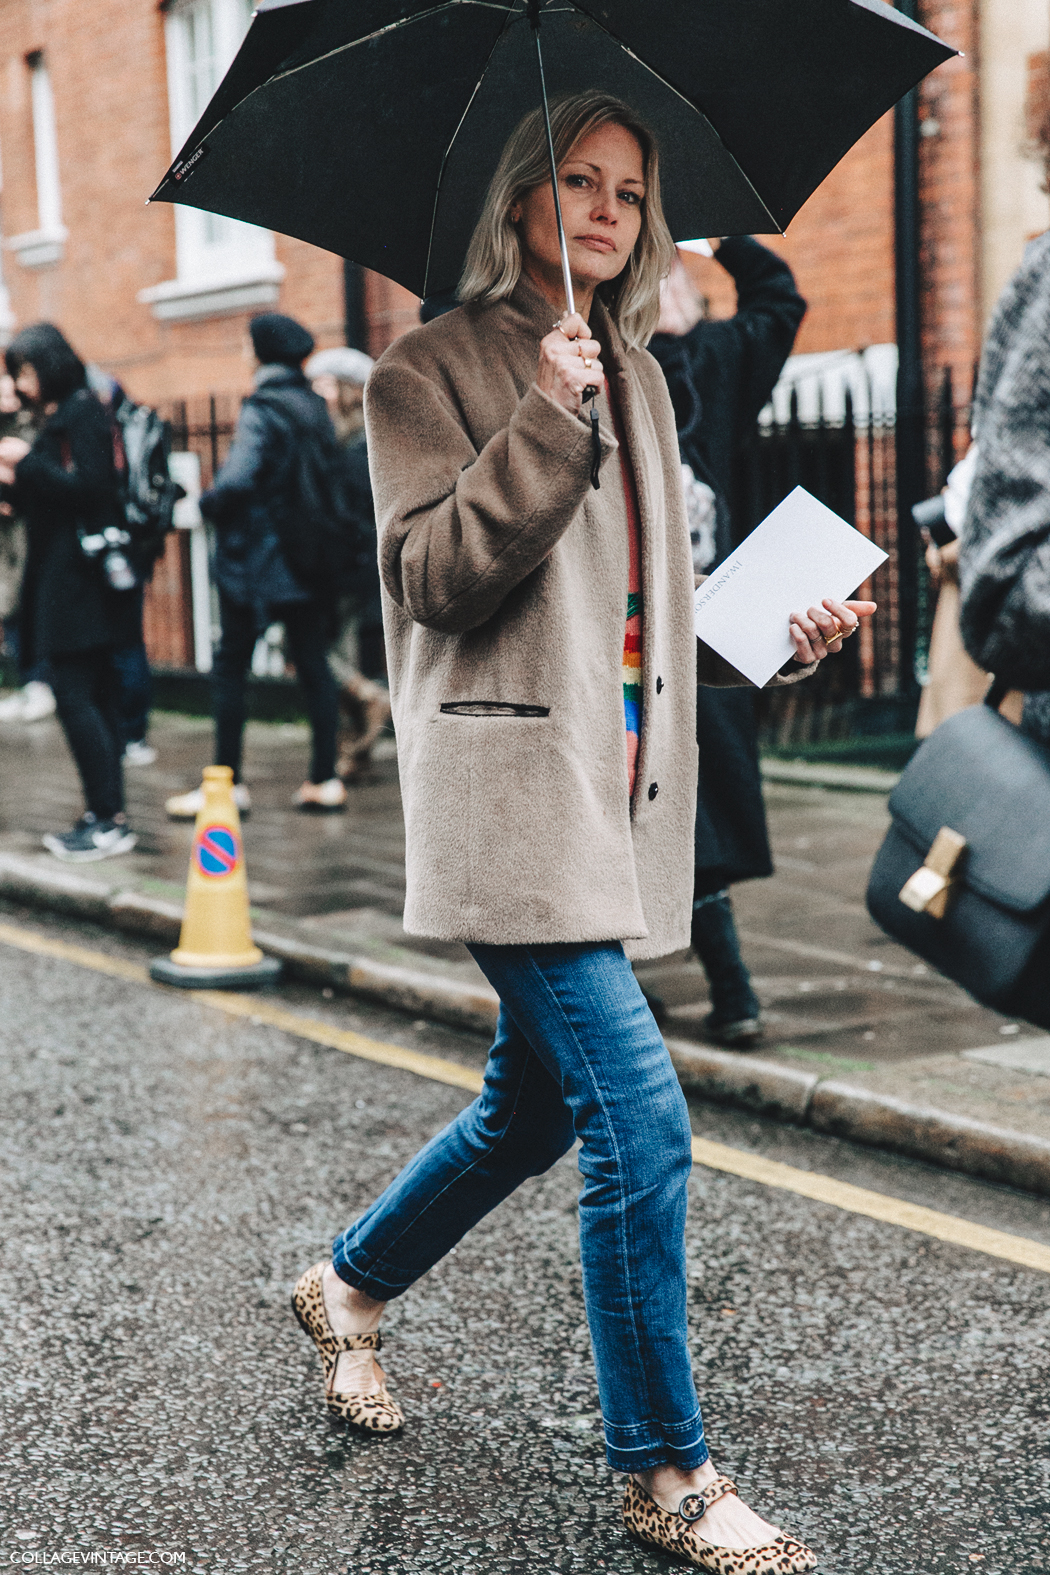 LFW-London_Fashion_Week_Fall_16-Street_Style-Collage_Vintage-Holly_royers-Camel-Jacket-Leopard_Flats-